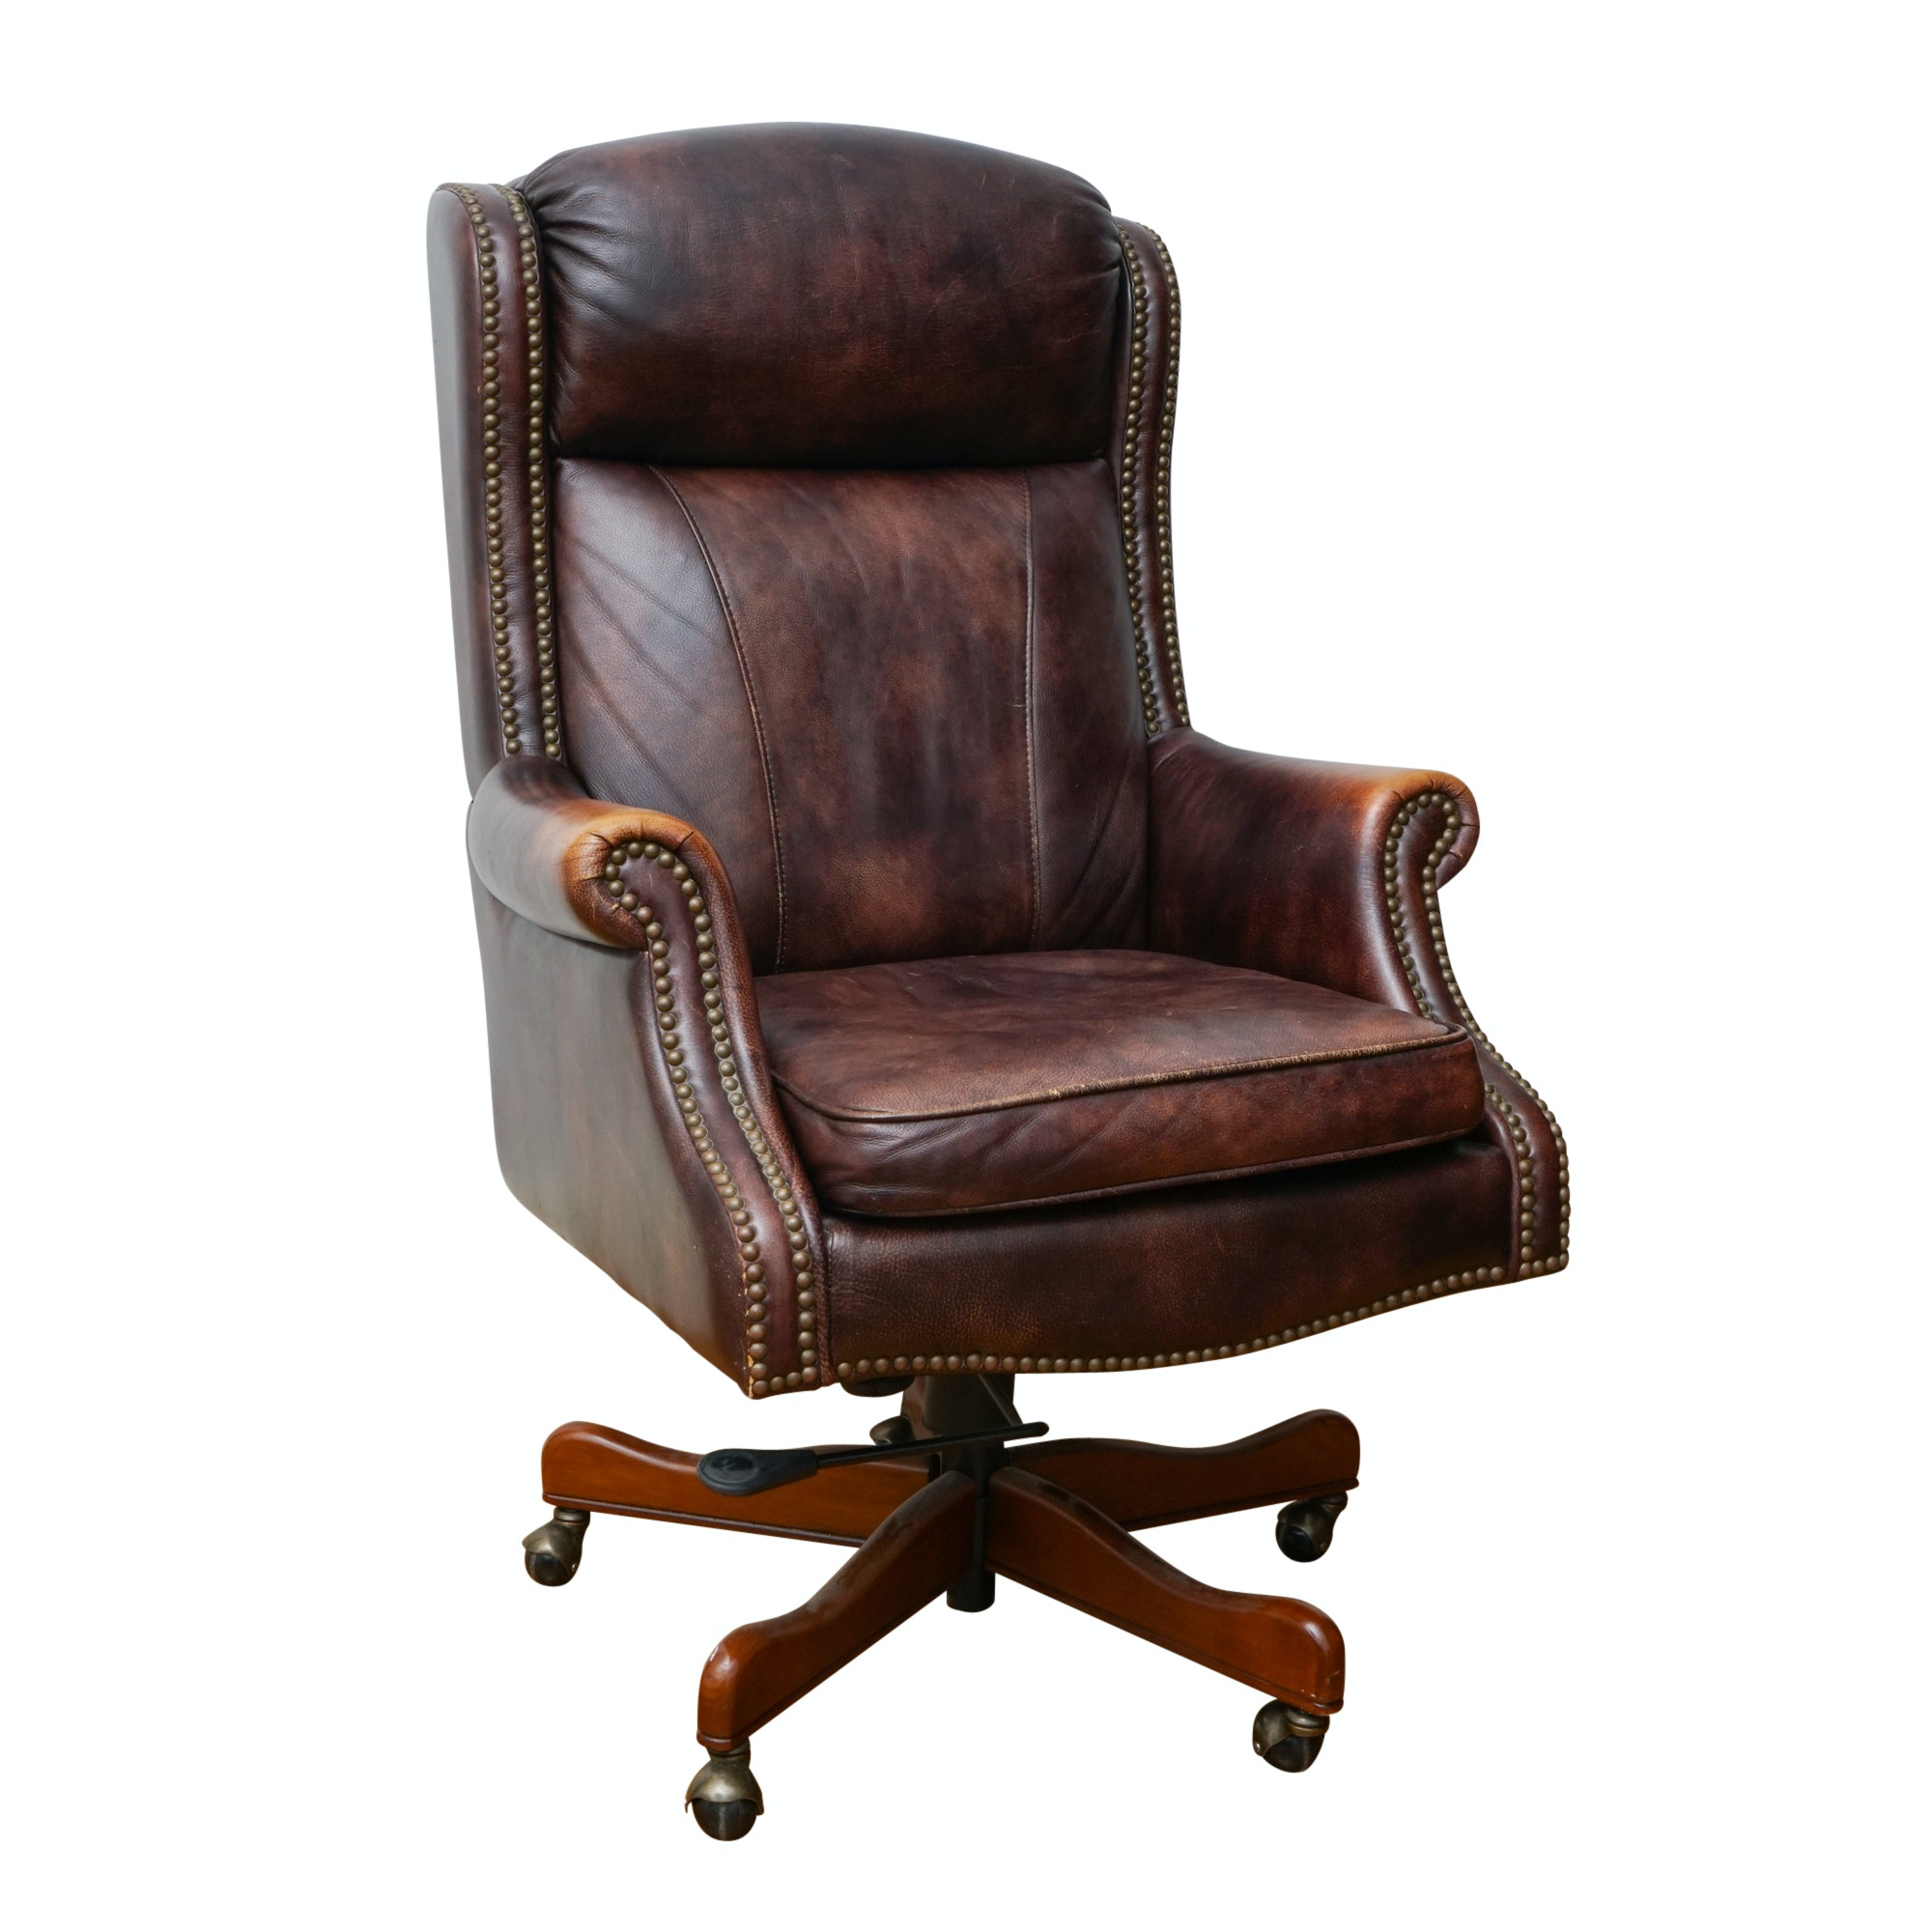 Brown Leather Executive Office Chair by Seven Seas Seating